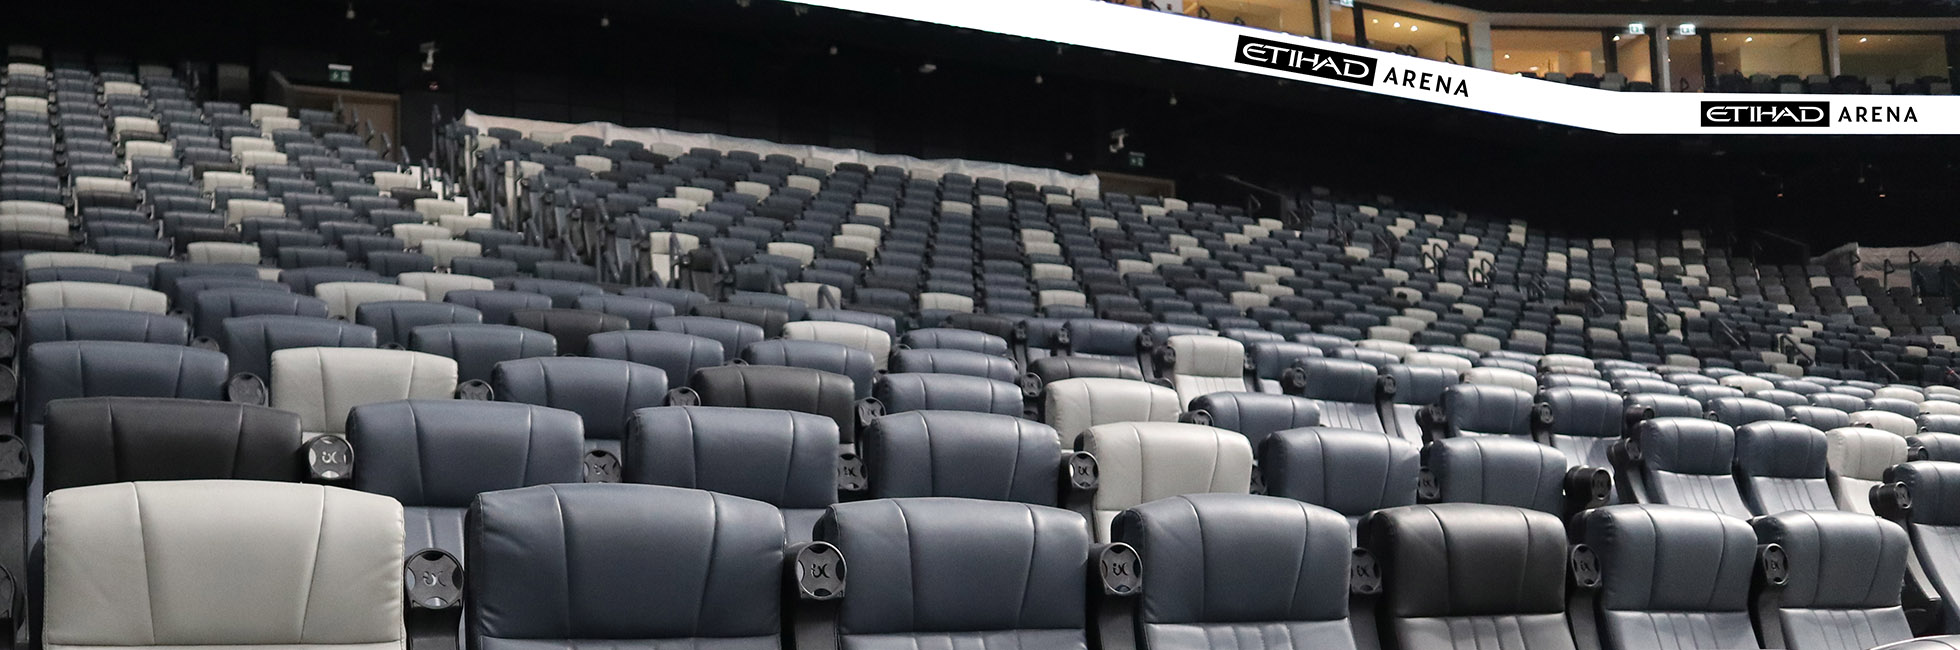 view of the Chairman's Lounge at Etihad Arena